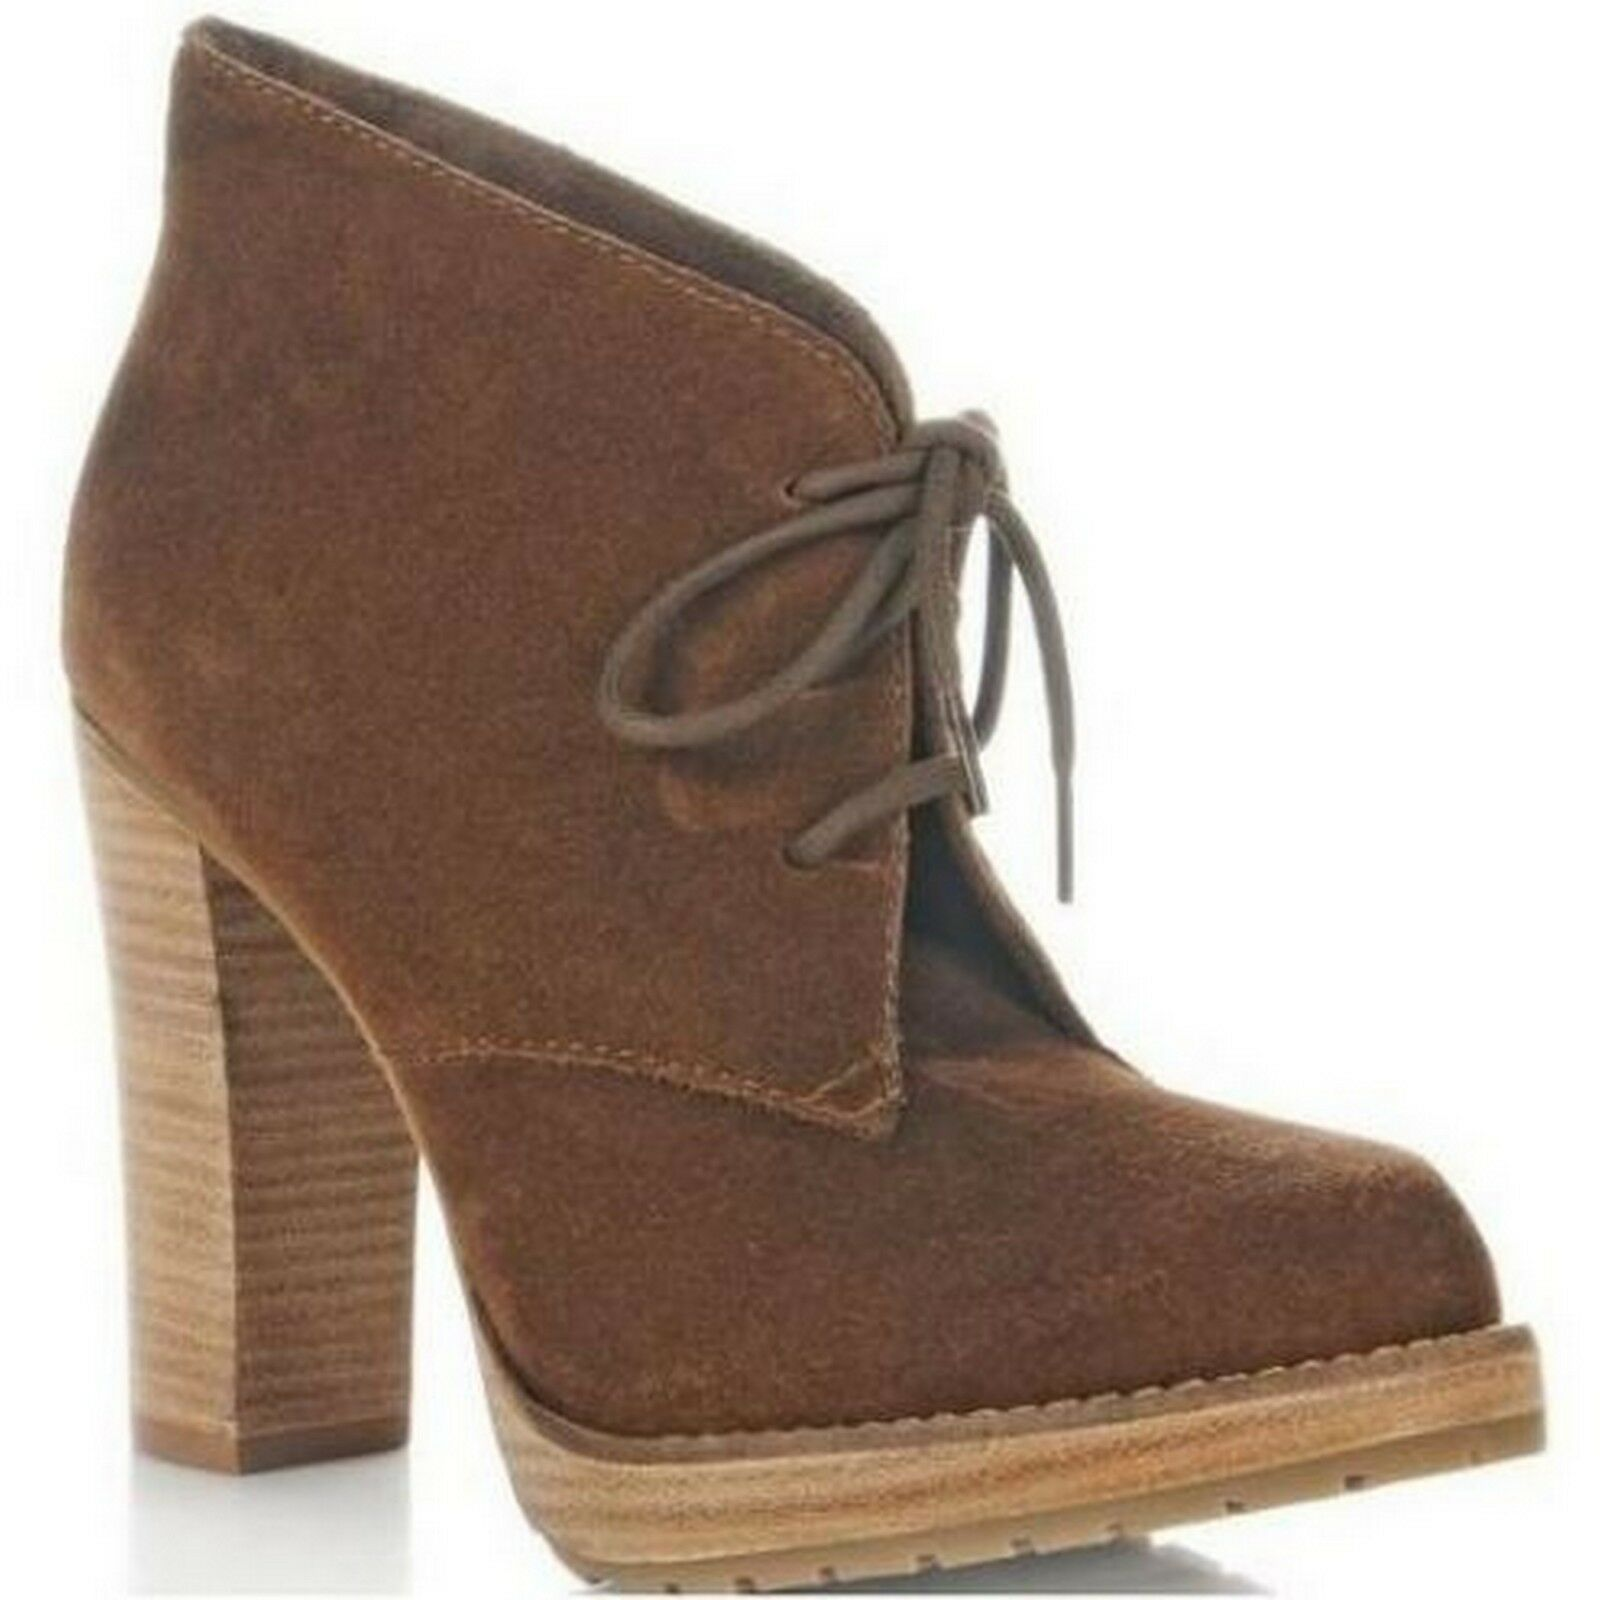 Steven by Steve Madden Baren Bown Suede Ankle Booties Boots 6, 10